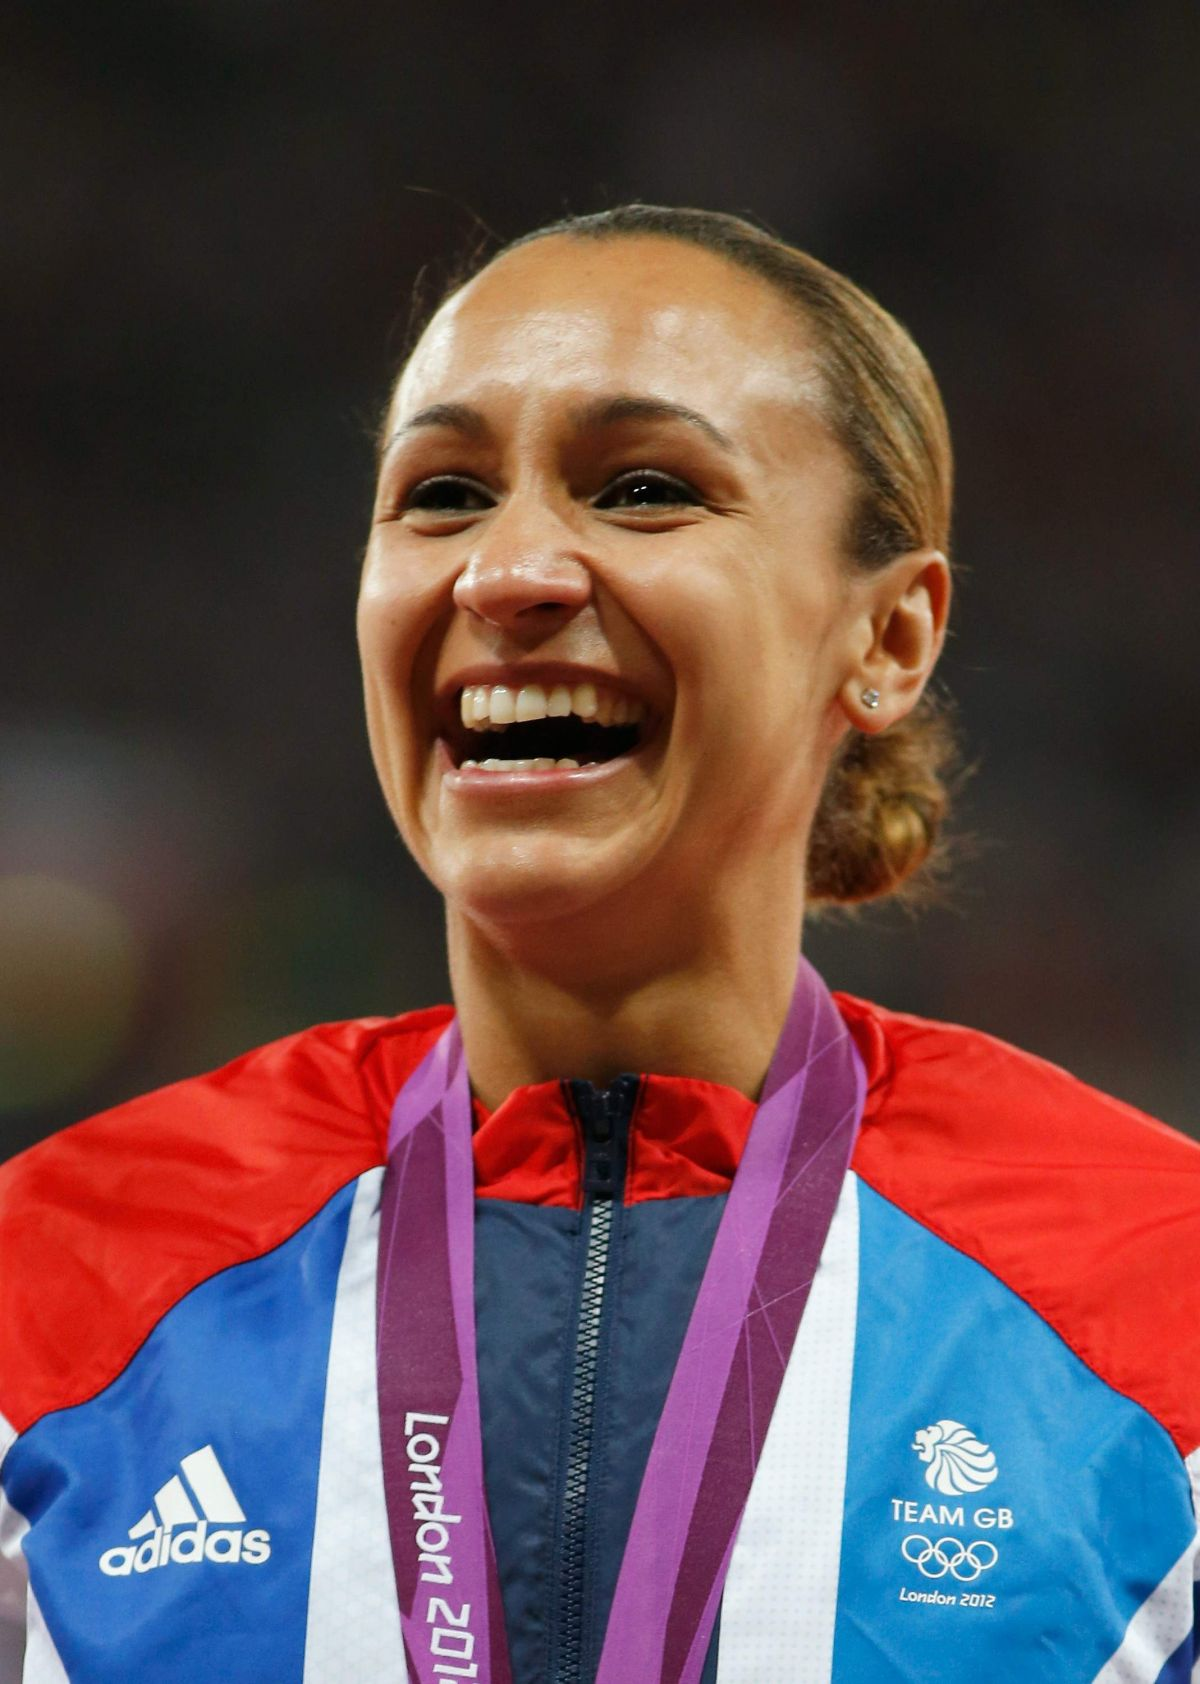 Jessica Ennis During The 2012 Olympics In London